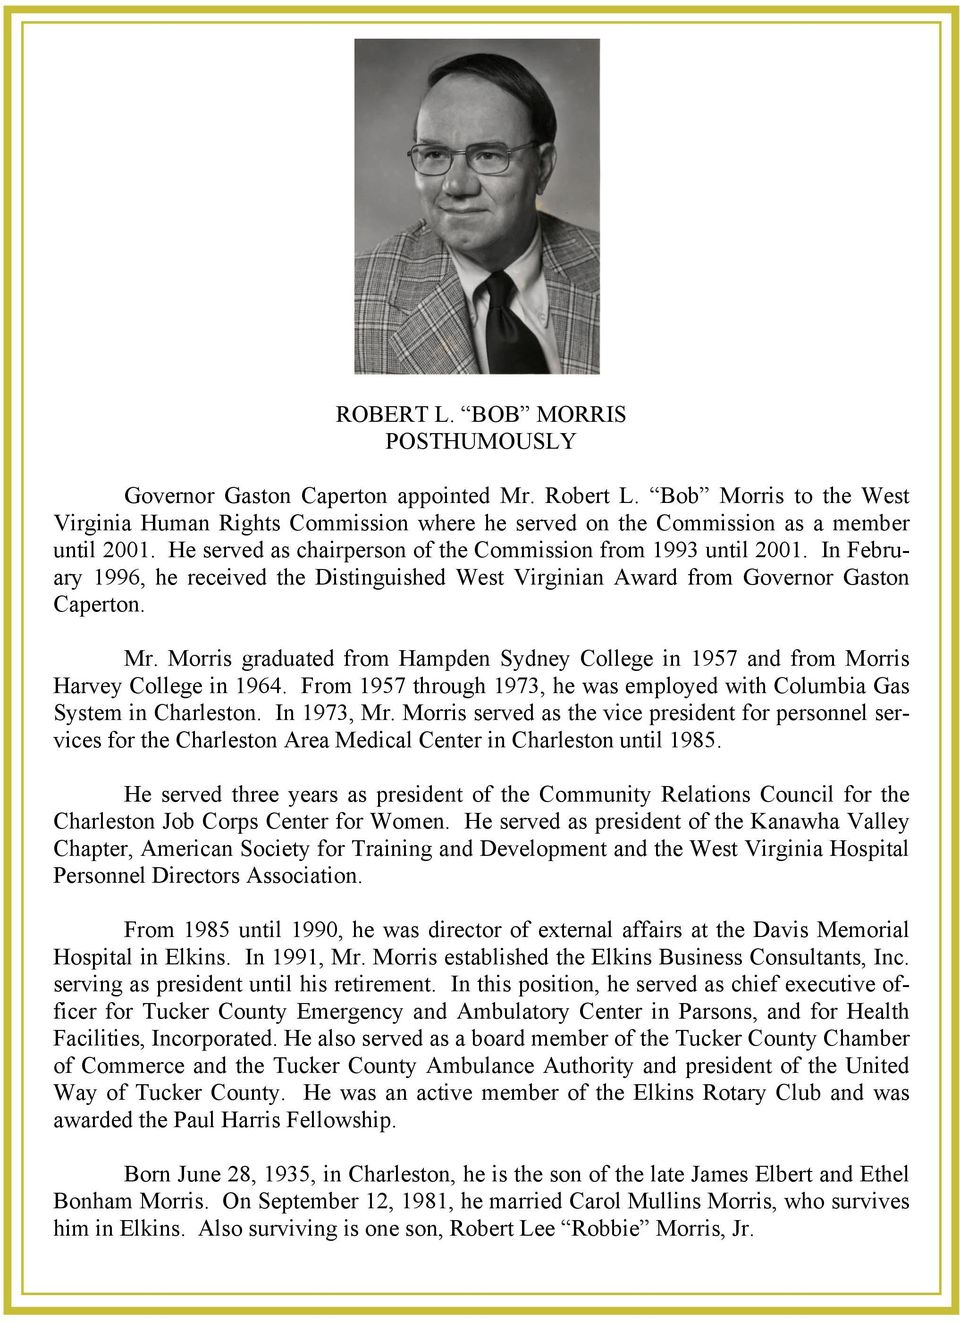 Morris graduated from Hampden Sydney College in 1957 and from Morris Harvey College in 1964. From 1957 through 1973, he was employed with Columbia Gas System in Charleston. In 1973, Mr.